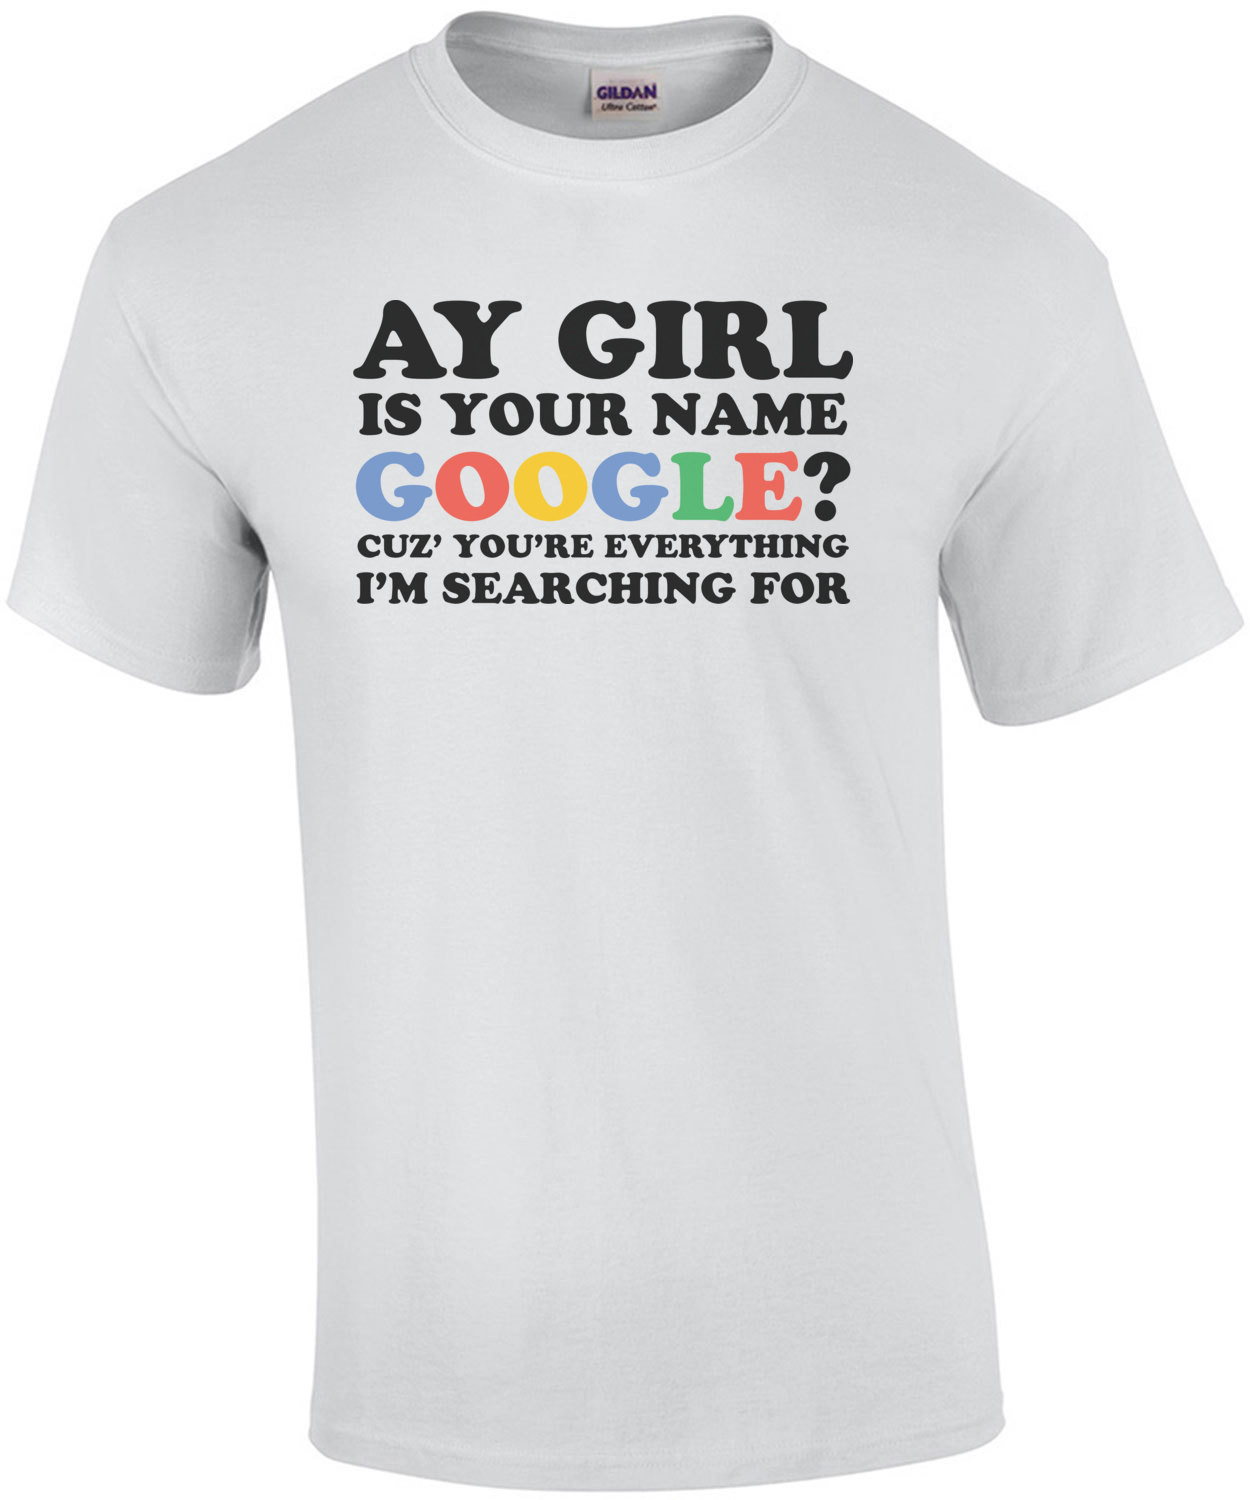 Ay Girl Is Your Name Google Cuz You're Everything I'm Searching For Shirt